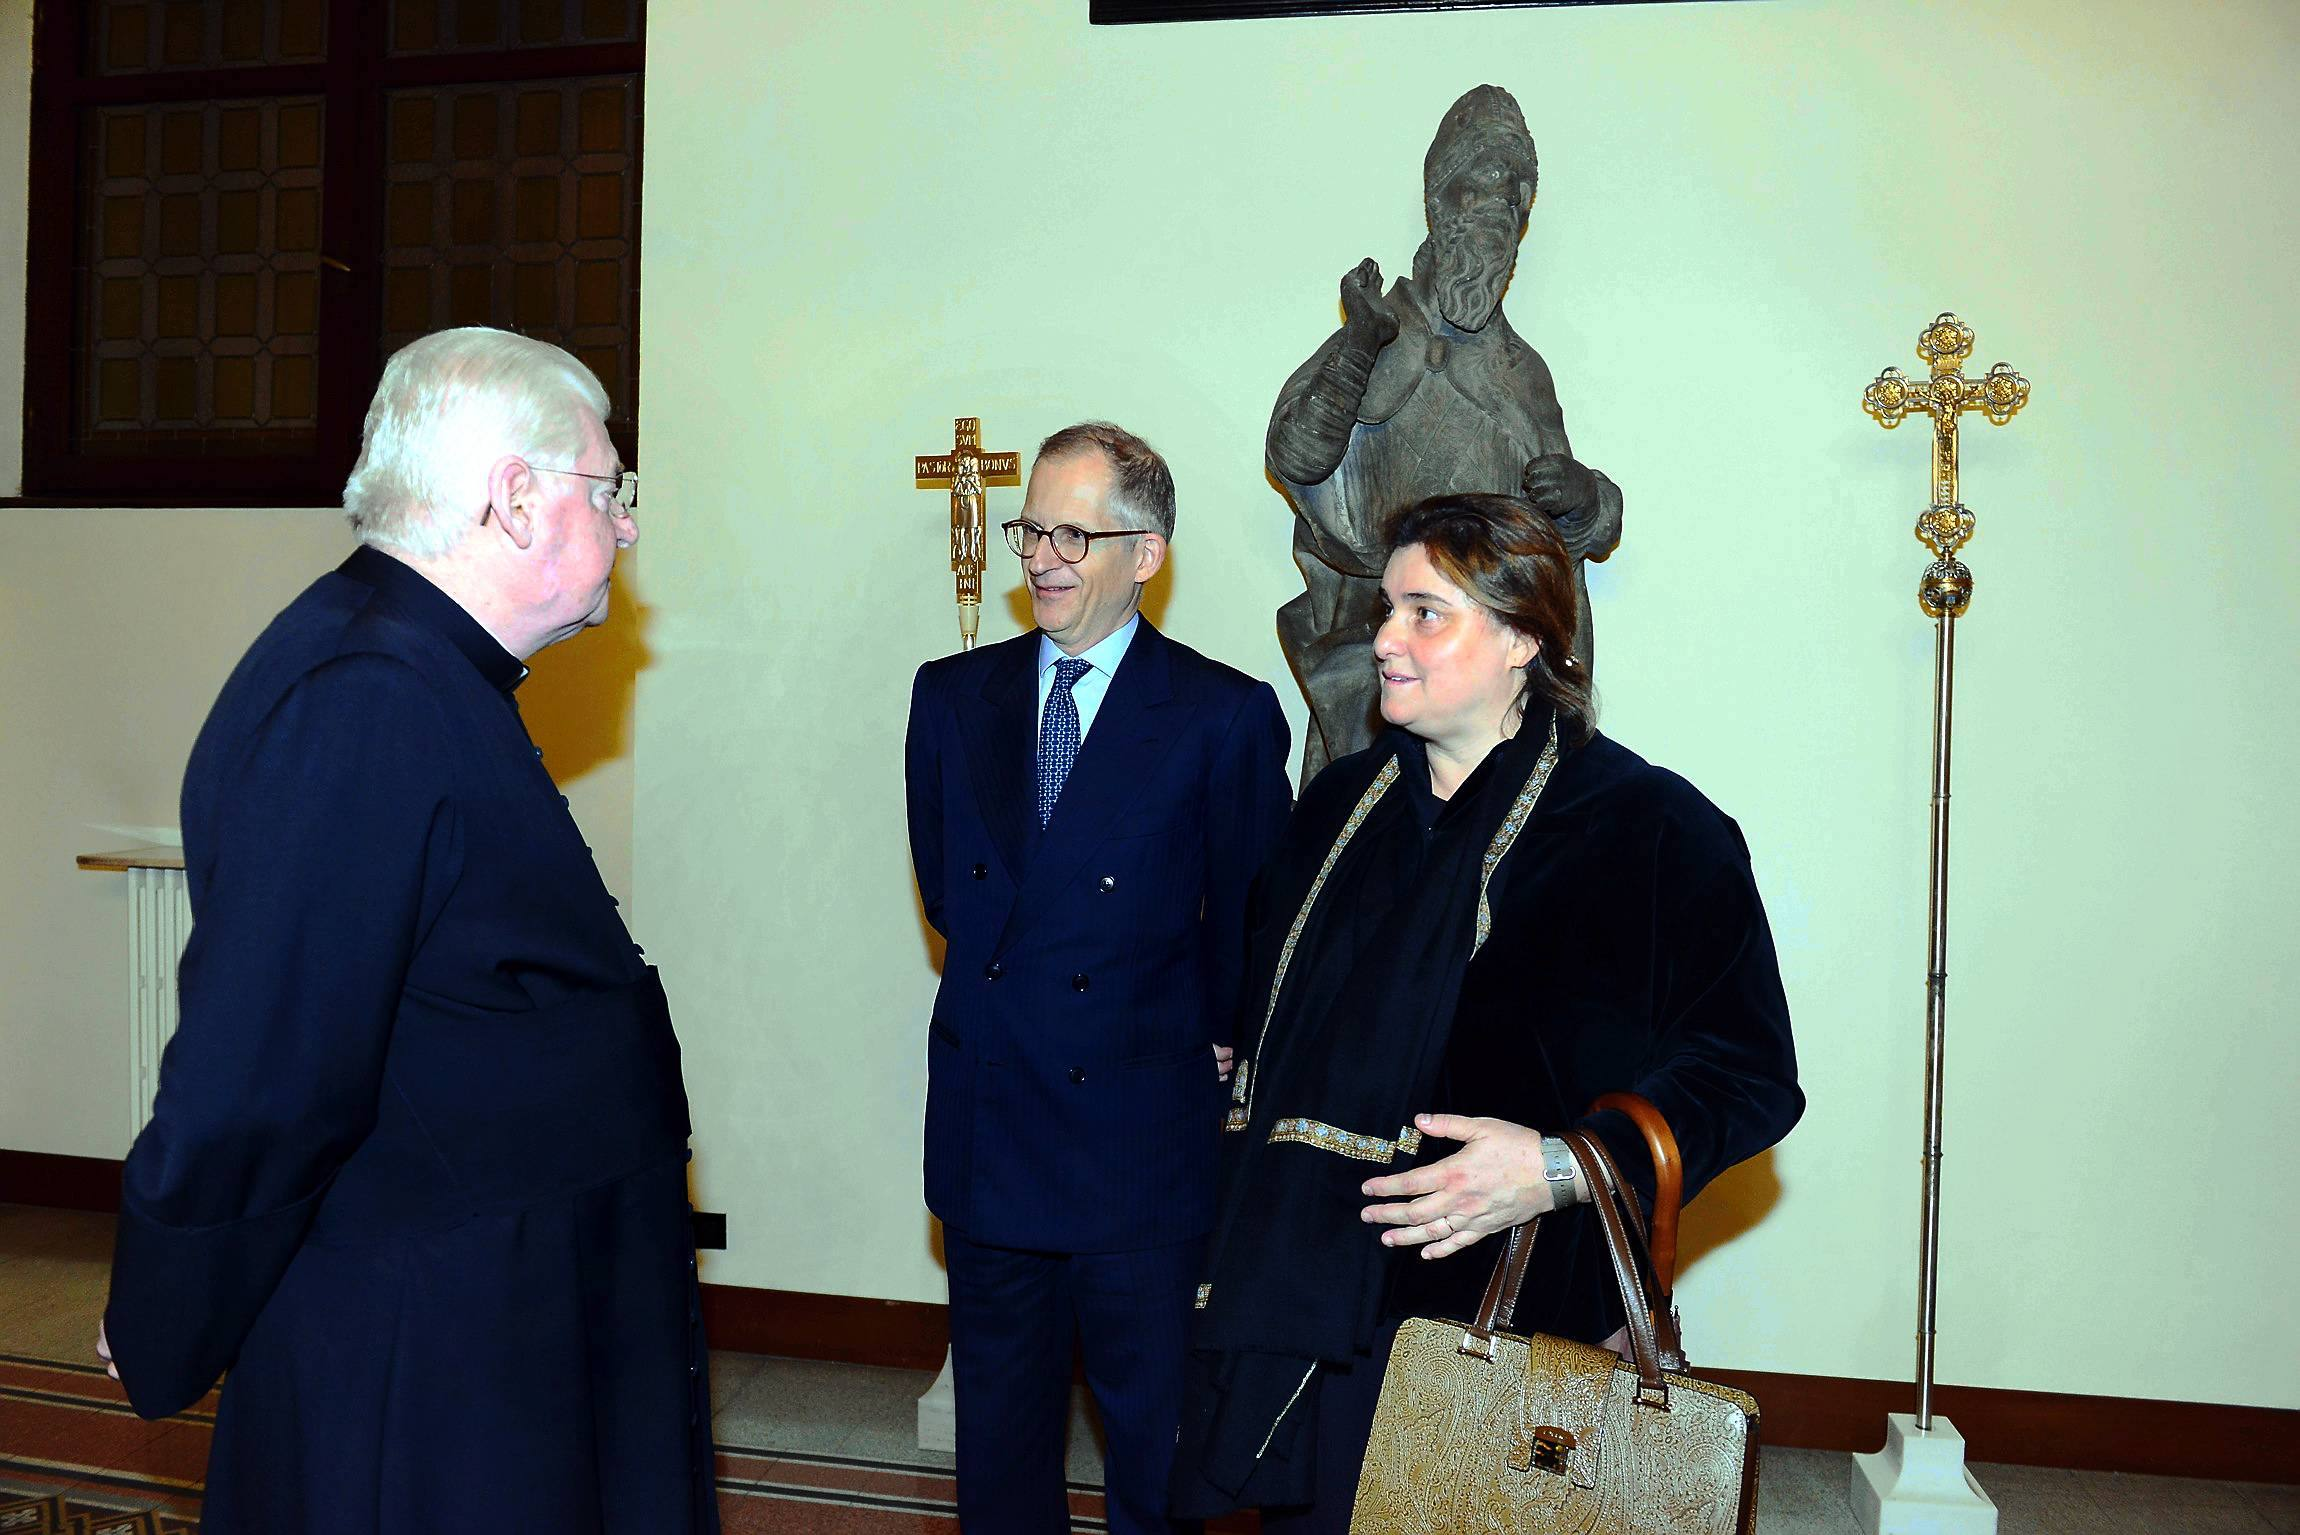 Closure of the canonization process for Carlo Acutis, Cardinal Angelo Scola with Parents of Carlo